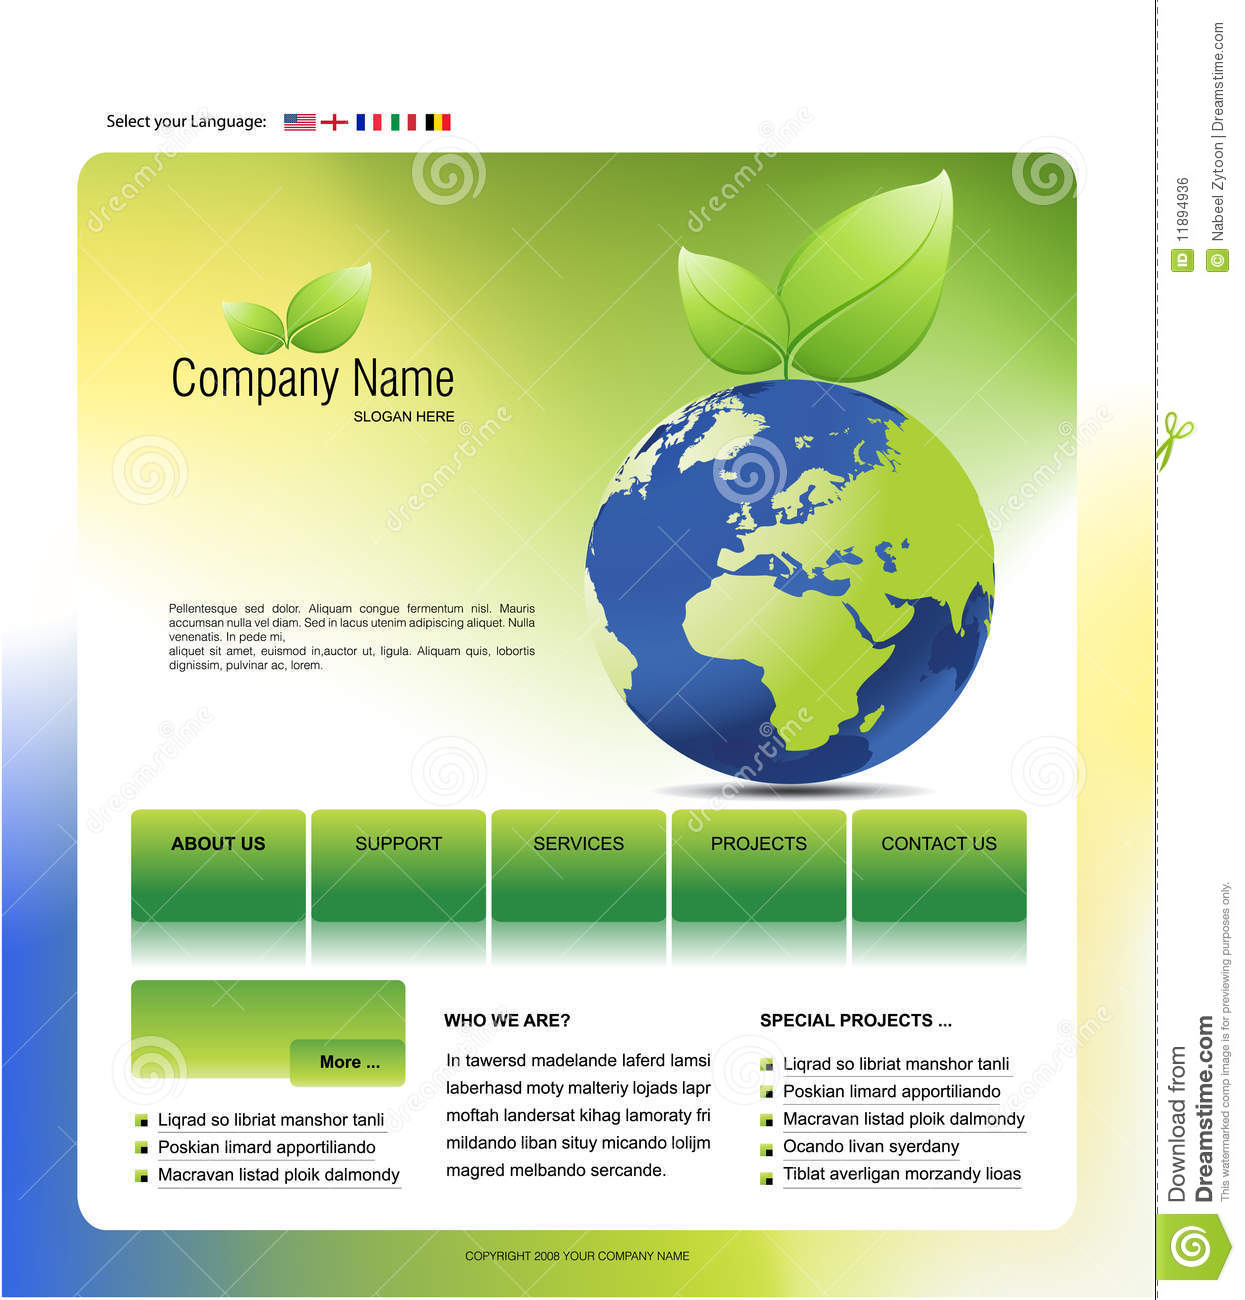 website template royalty free stock image image 11894936